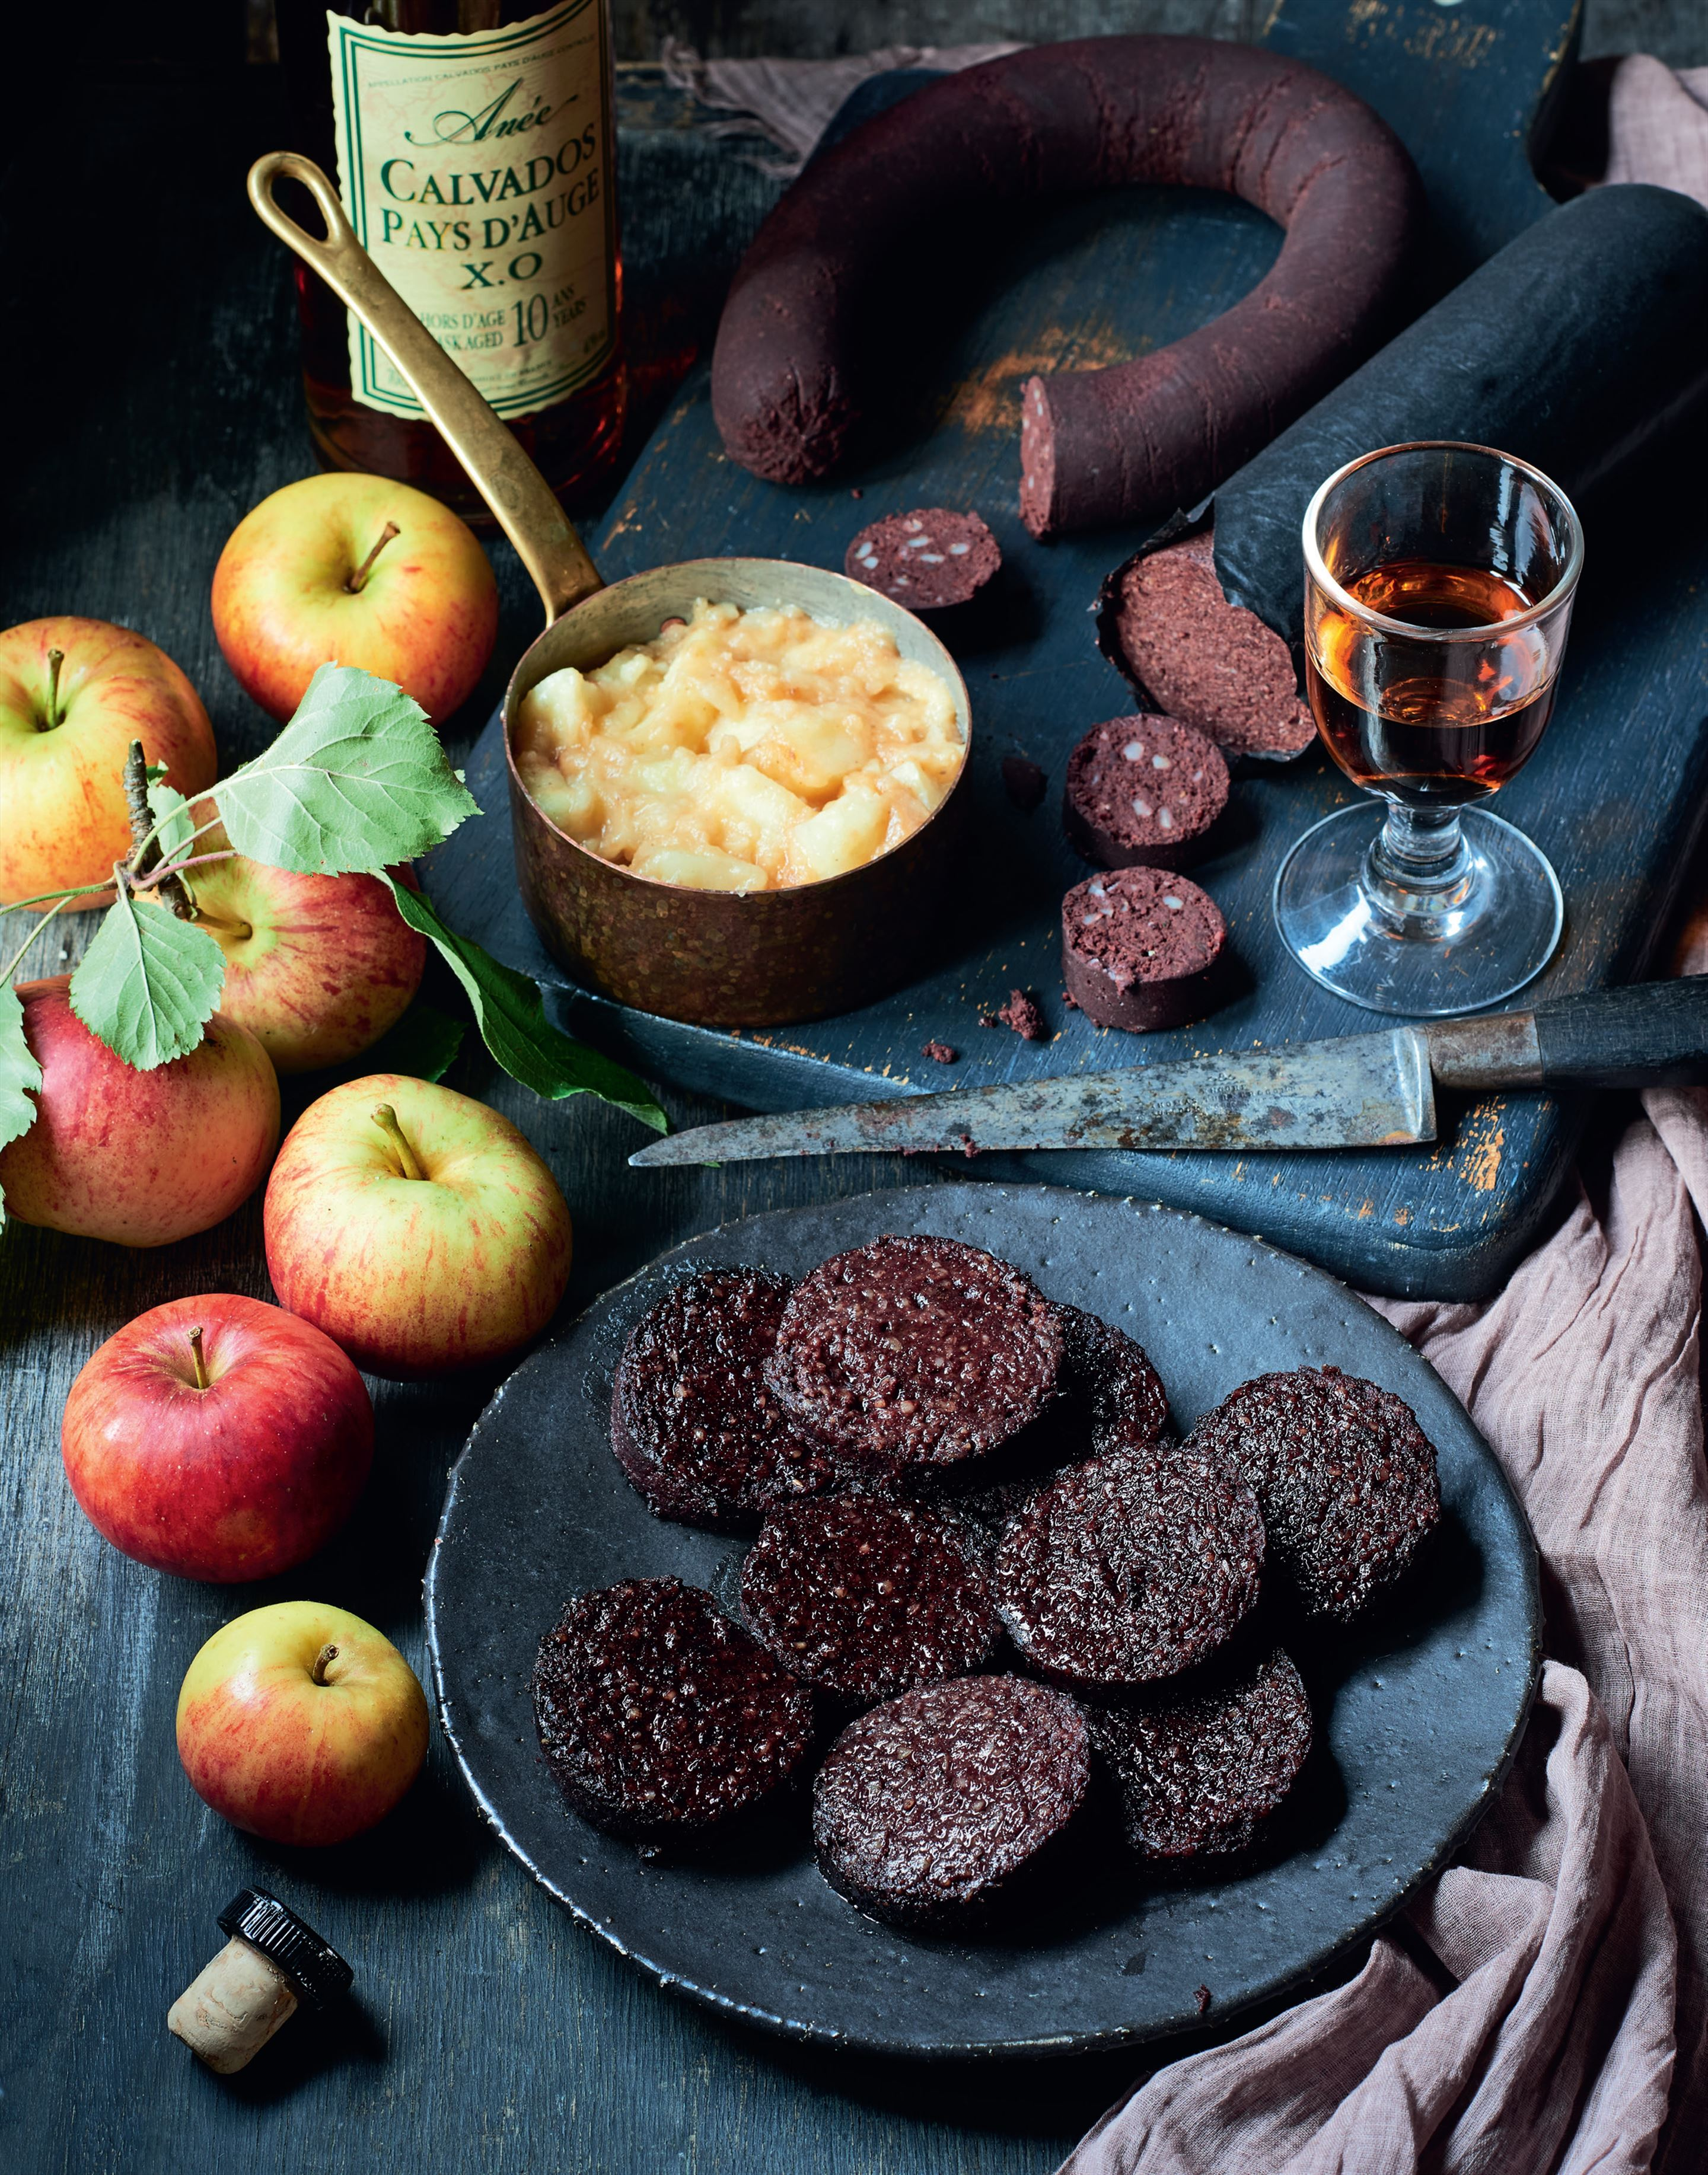 Black pudding with apples & Calvados